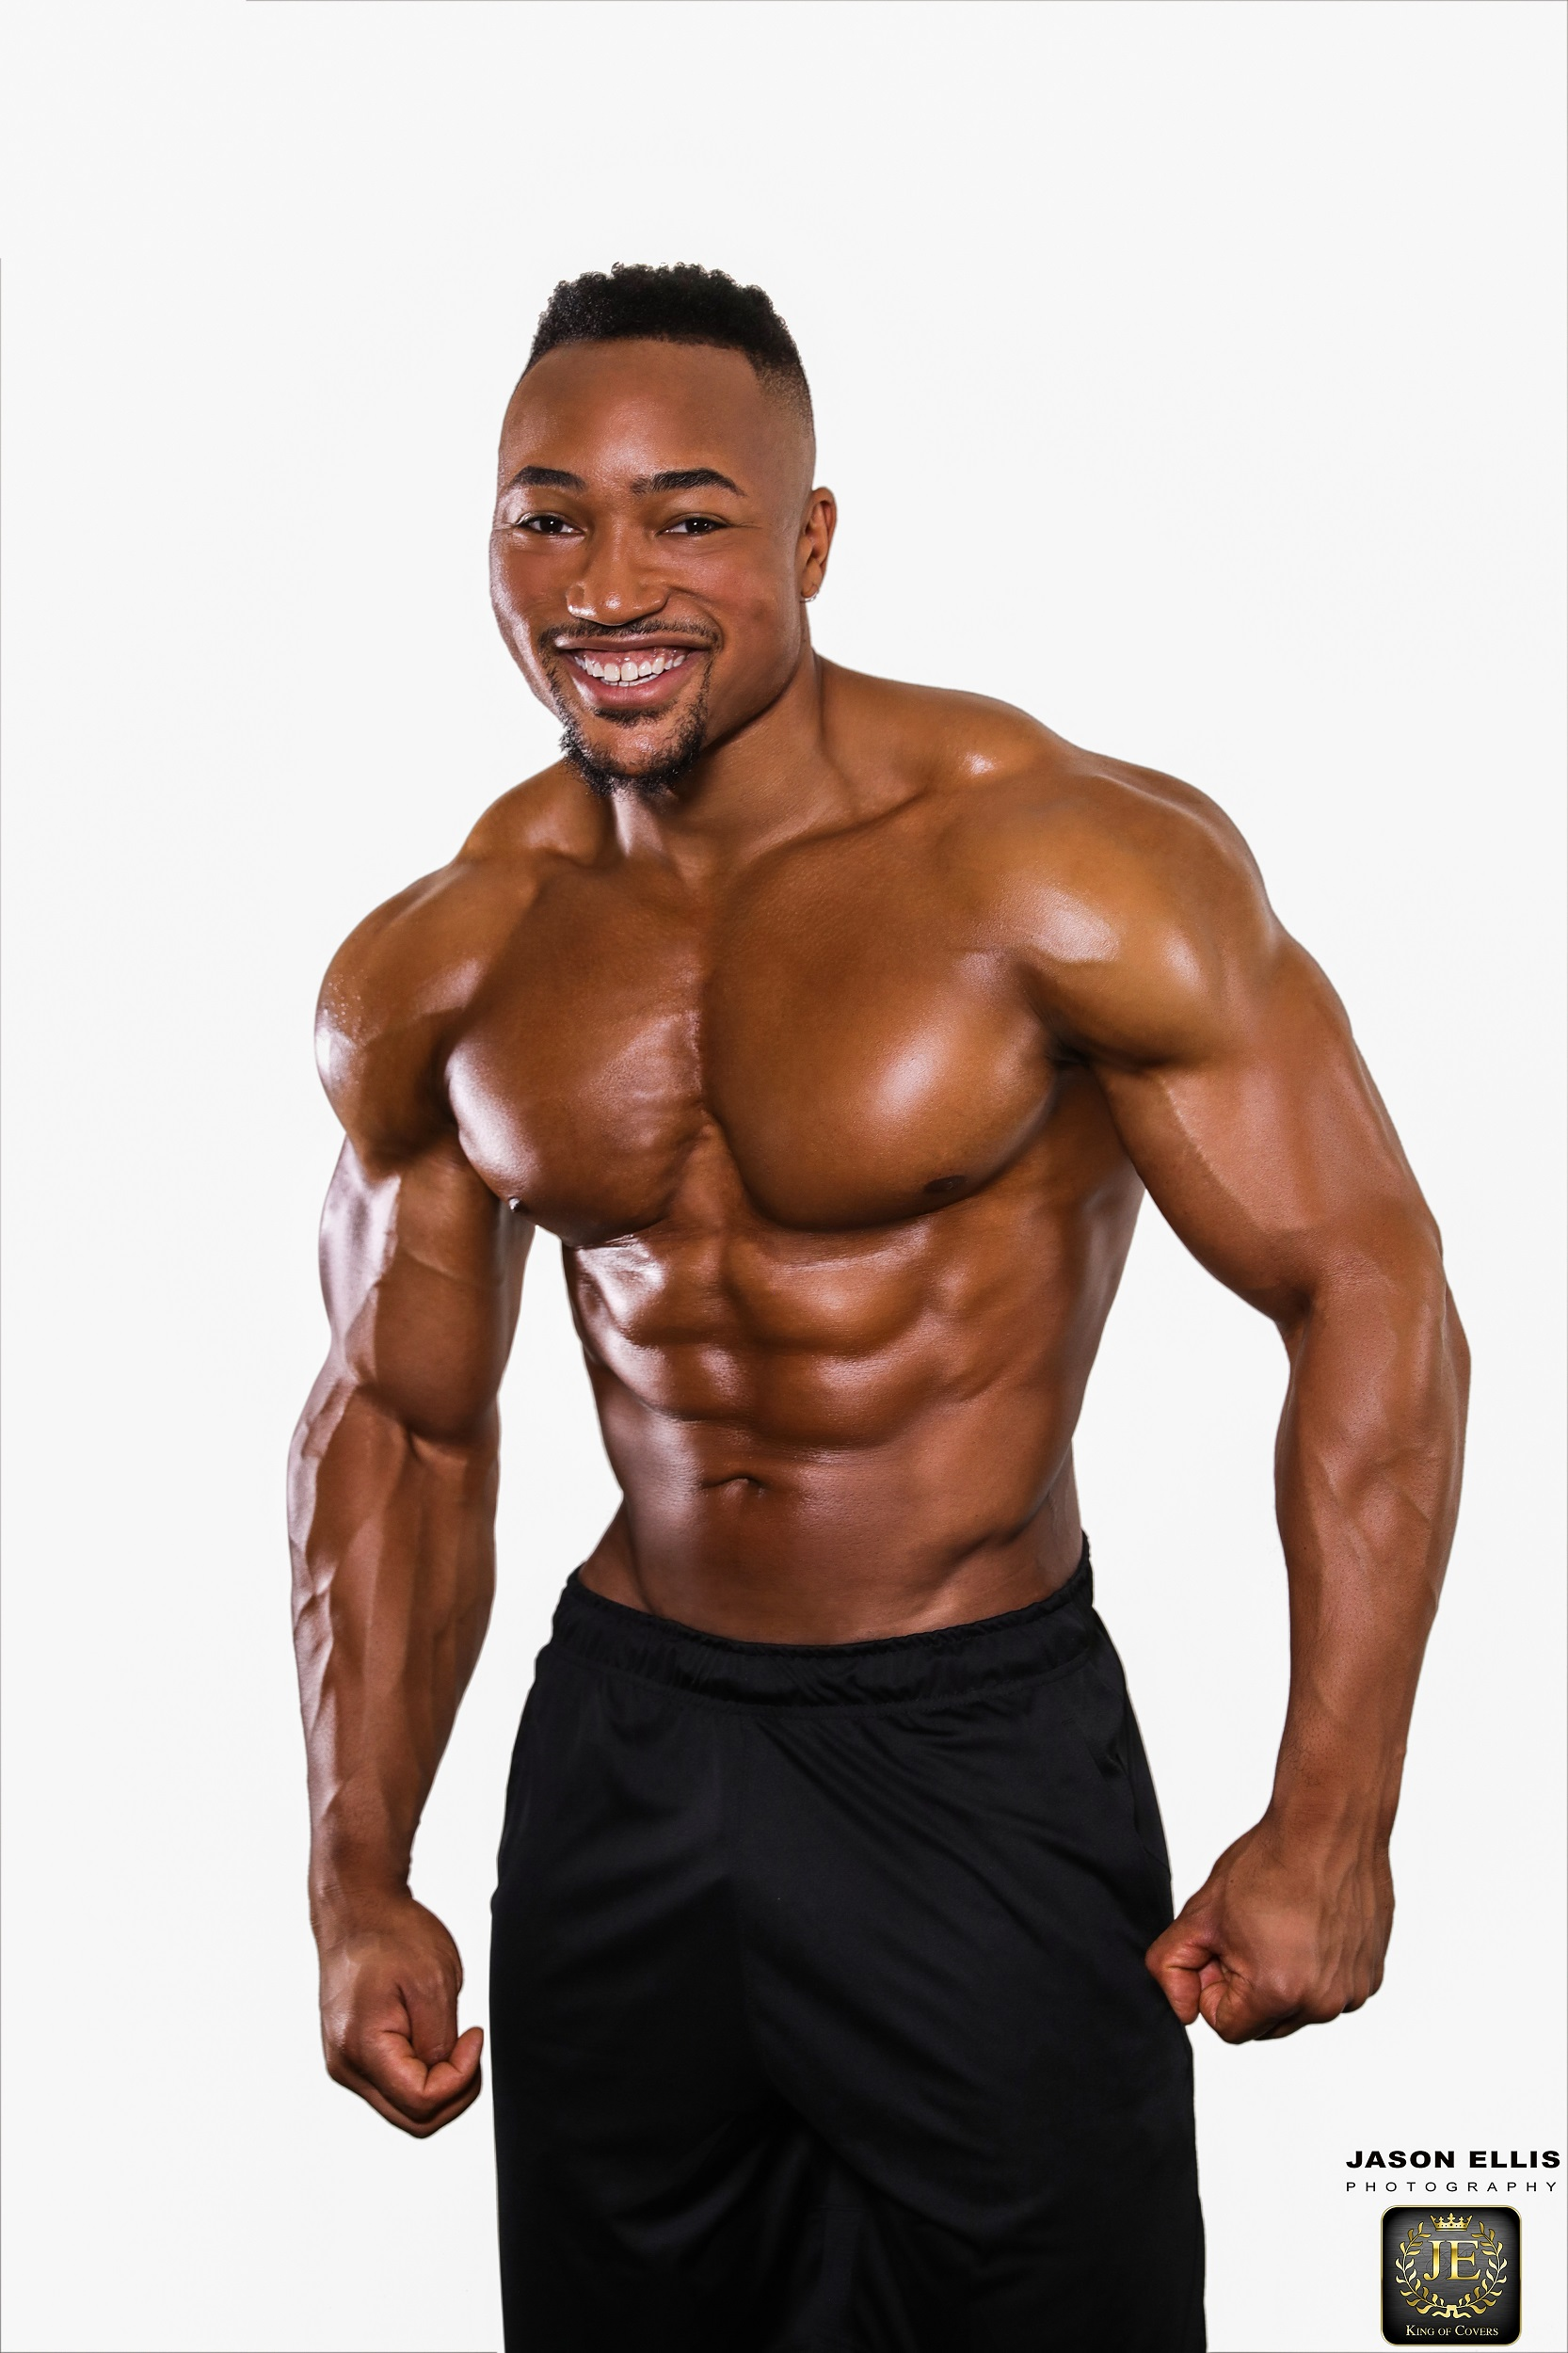 5 Tips From Your Trainer: JC White